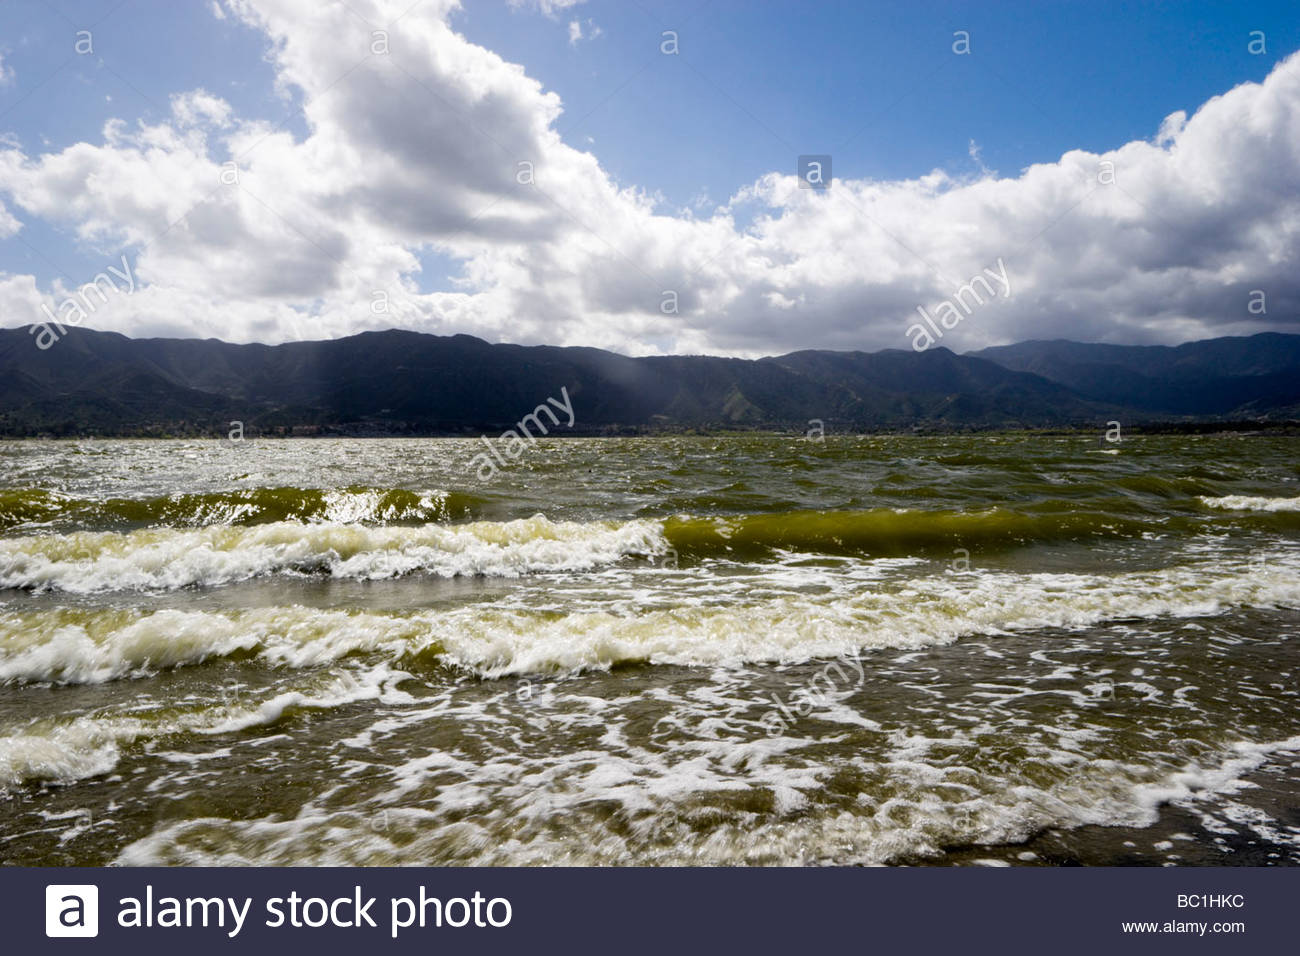 Lake Elsinore California - Stock Image